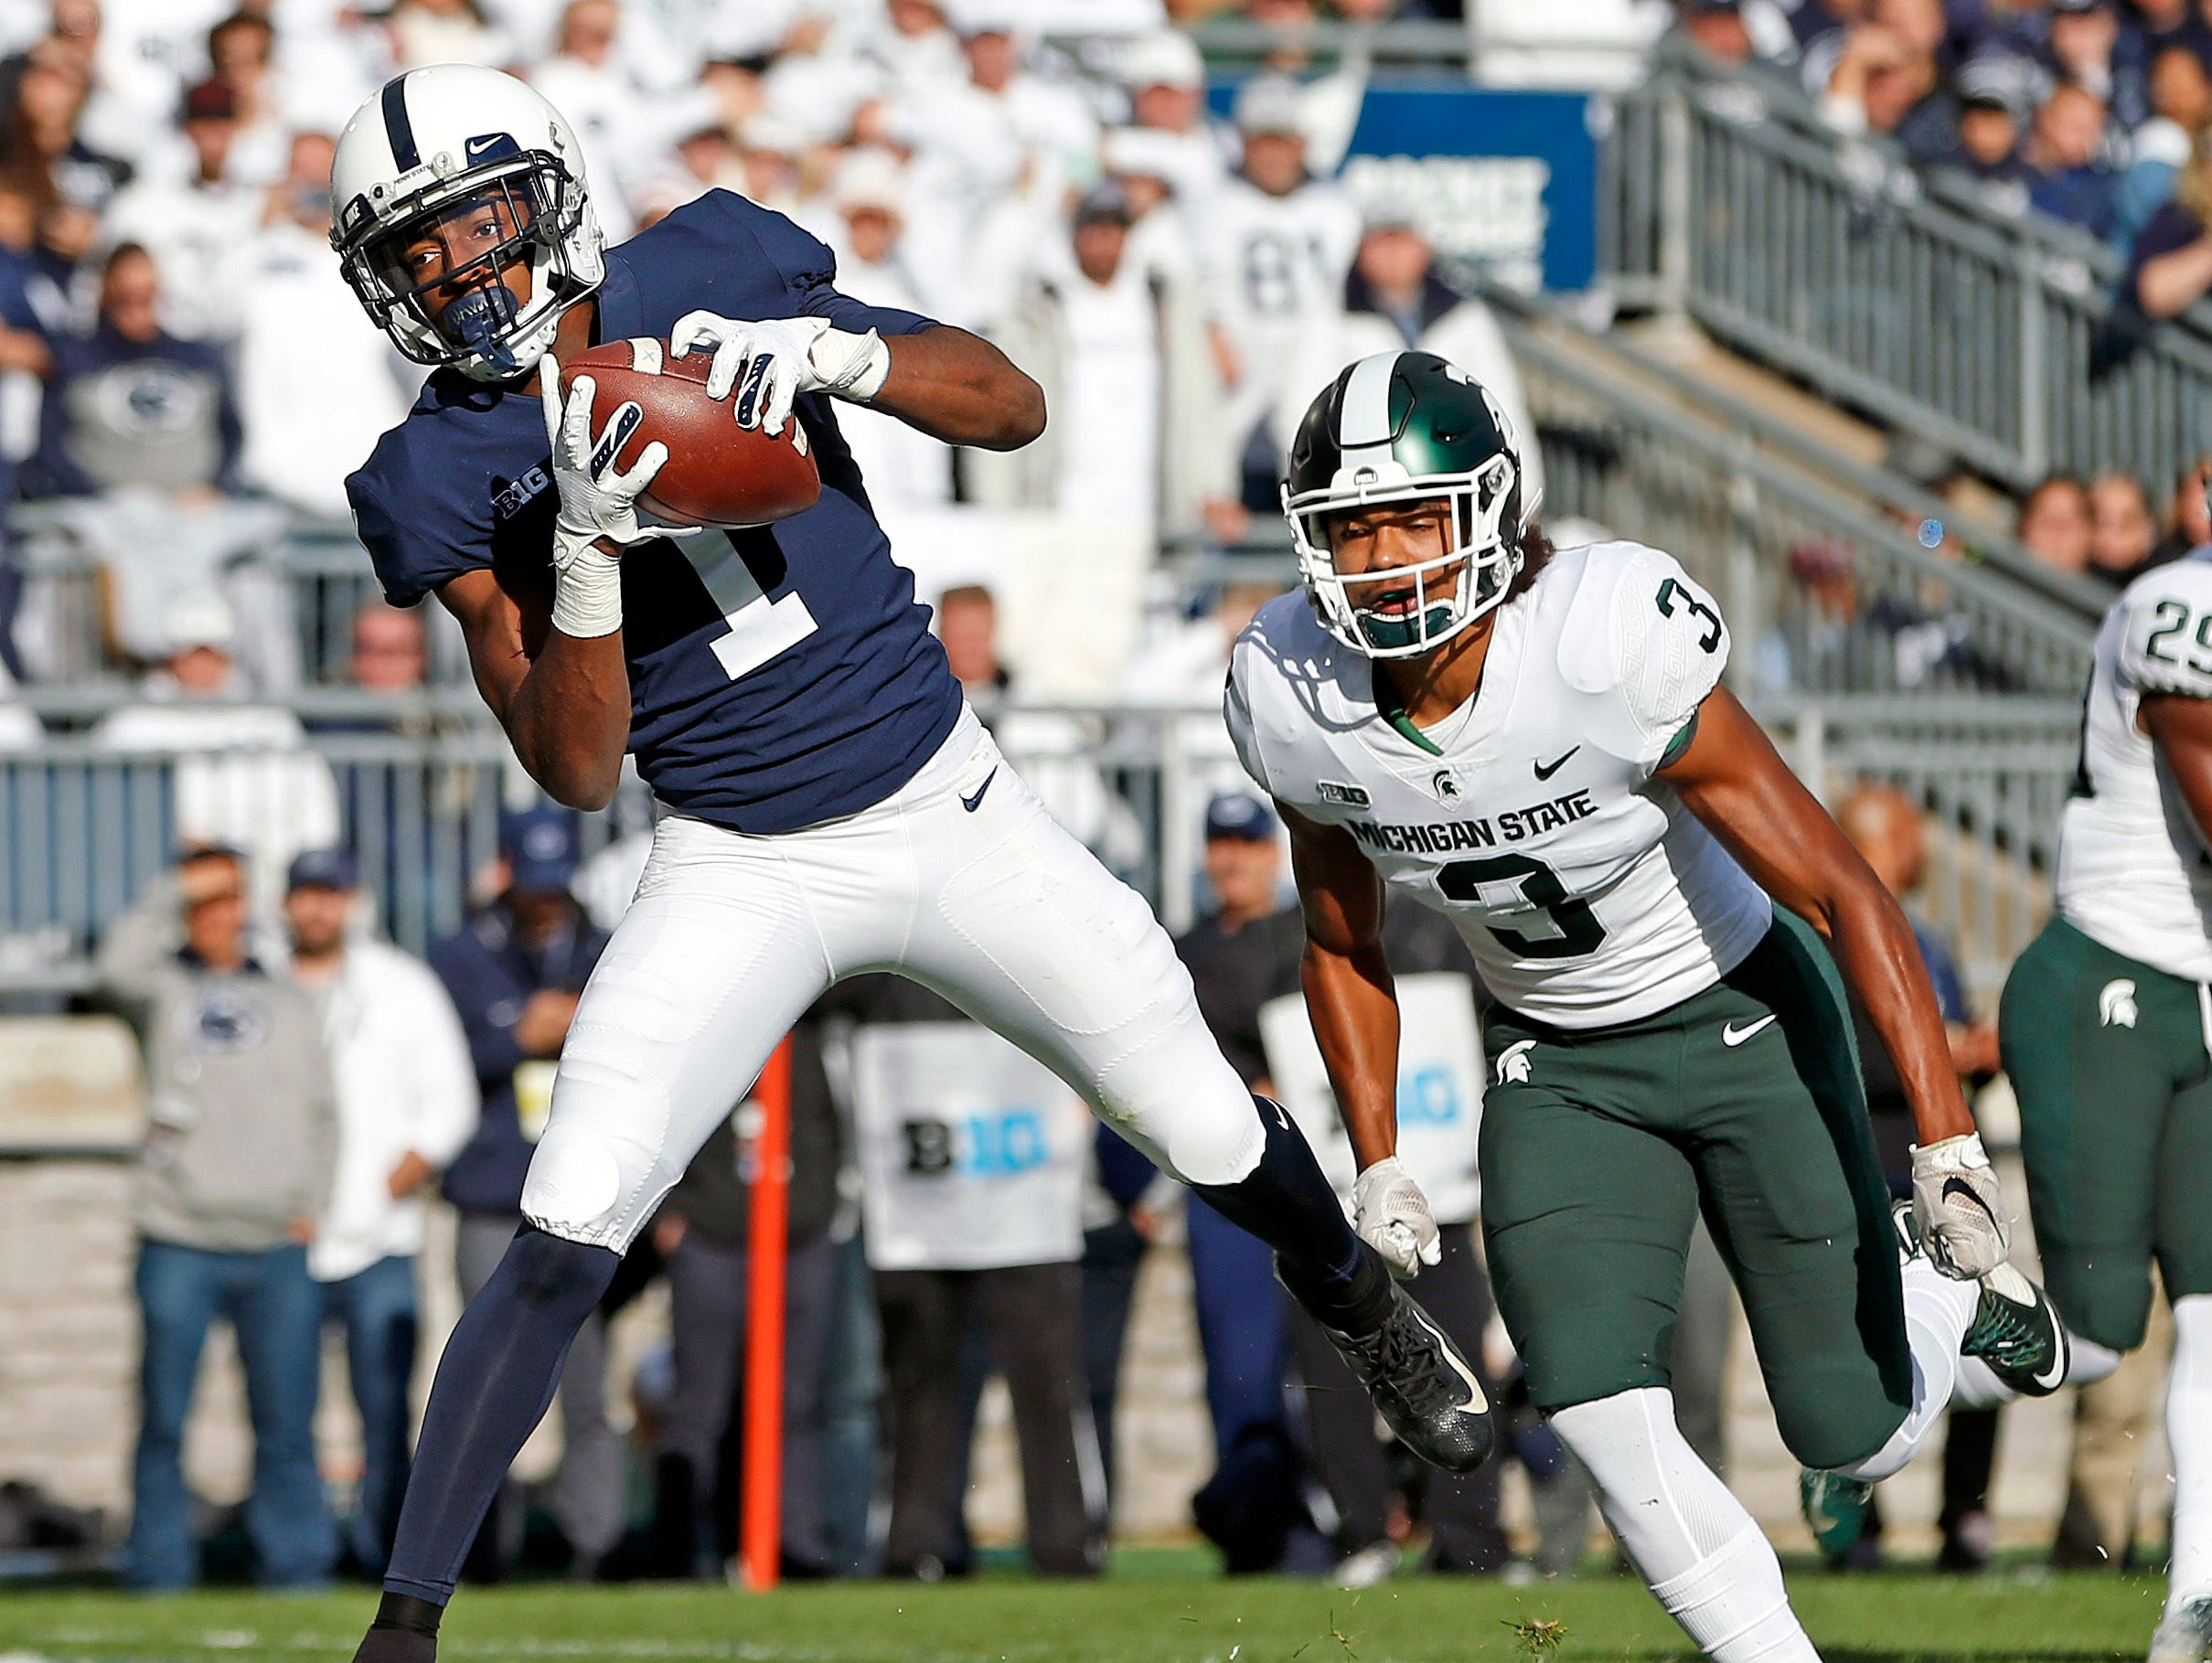 Penn State's KJ Hamler (1) catches a touchdown pass in front of Michigan State's Xavier Henderson (3) during the first half of an NCAA college football game in State College, Pa., Saturday, Oct. 13, 2018. (AP Photo/Chris Knight)